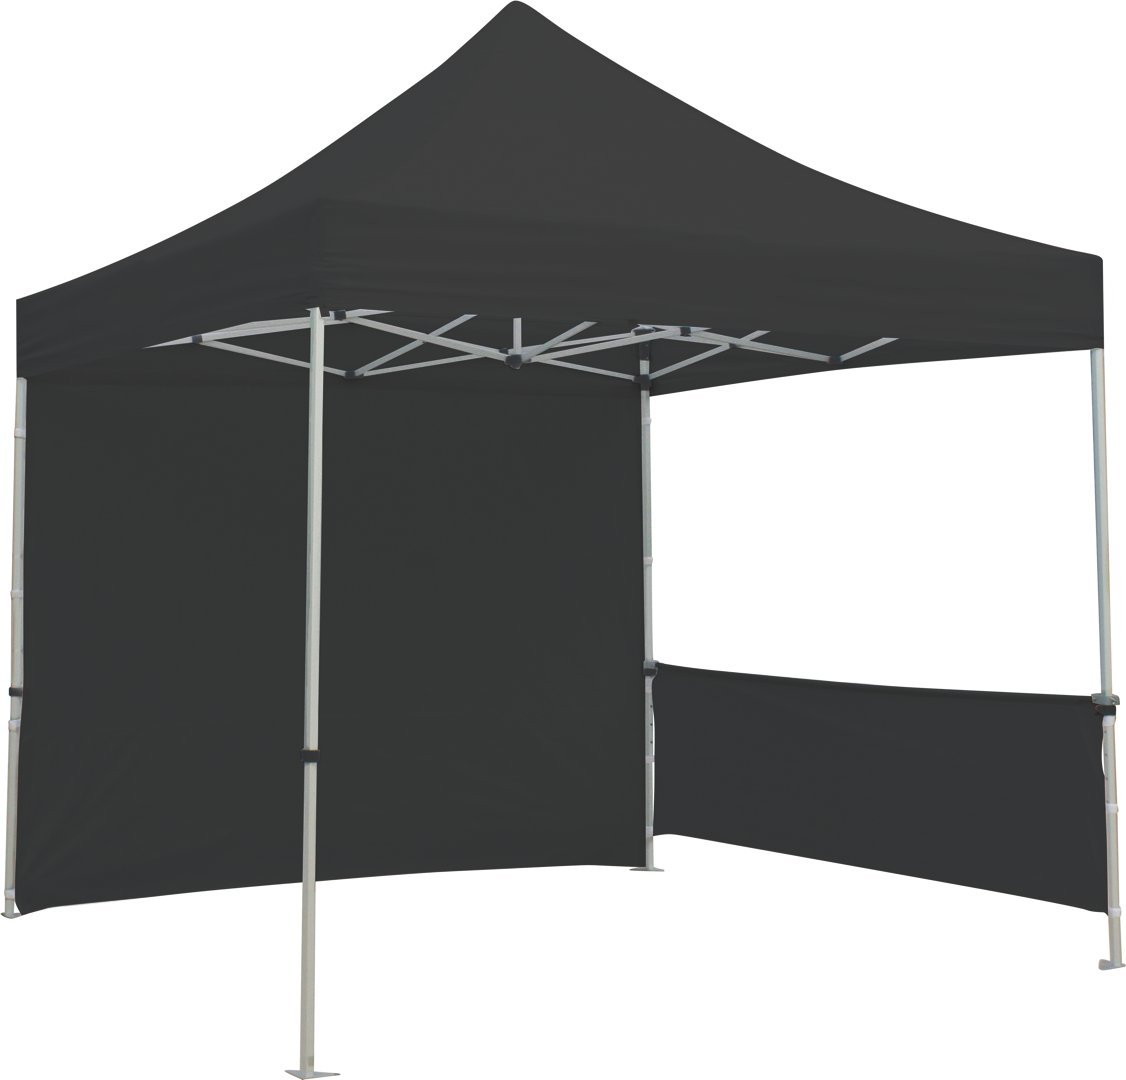 Exhibitor's Handbook TNT-3MX3M-FLL-WLL-BLK Zoom Popup Tent Full Wall Only, 10', Black by Exhibitor's Handbook